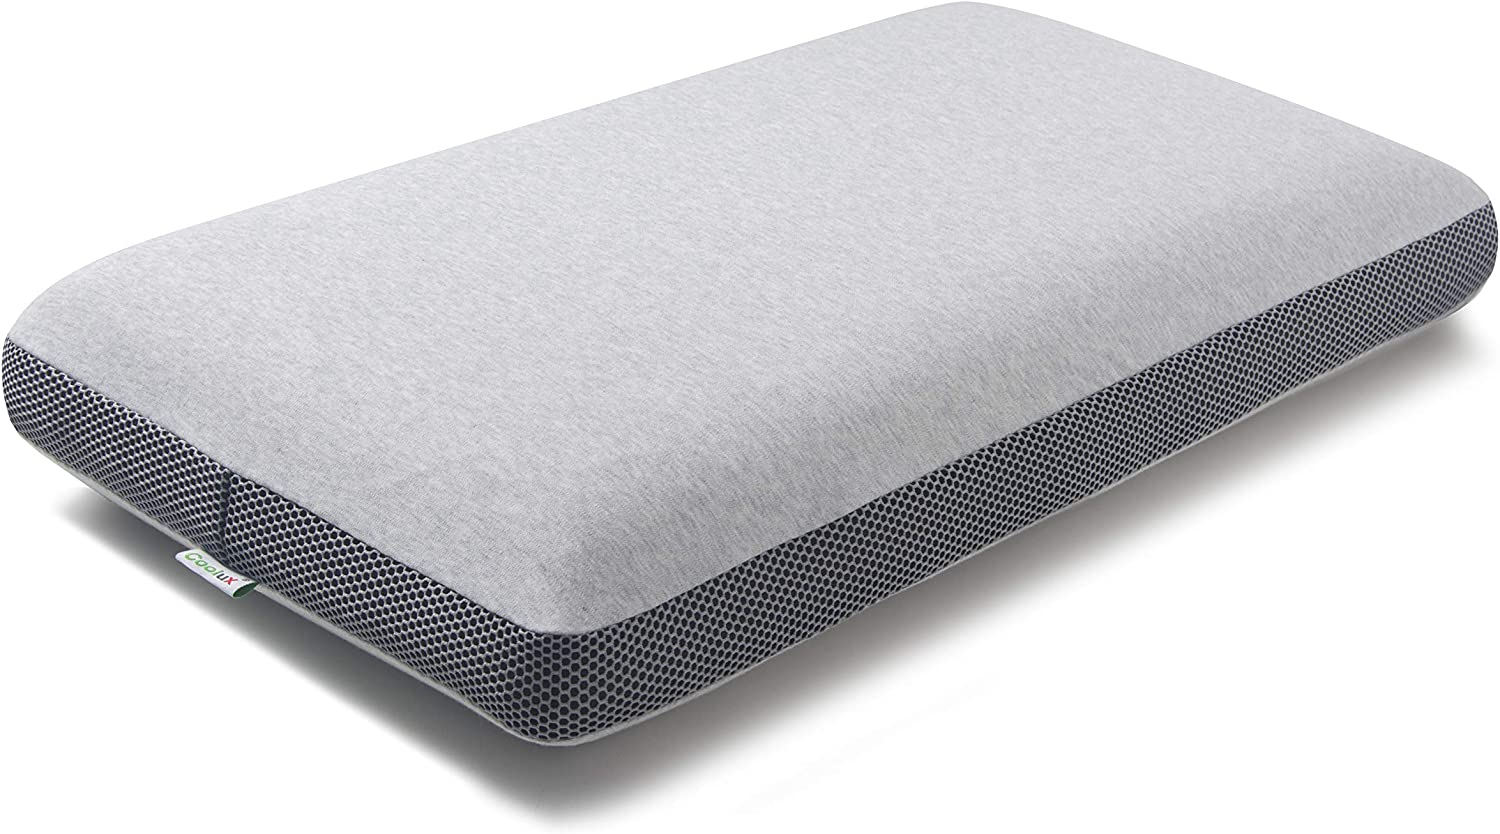 Coolux Memory Foam Pillow - Sleeping Pillow for Back, Stomach, Side Sleepers - Contour Bed Pillows for Neck and Shoulder Pain Relief (Grey+Black, Height: 4 inch)